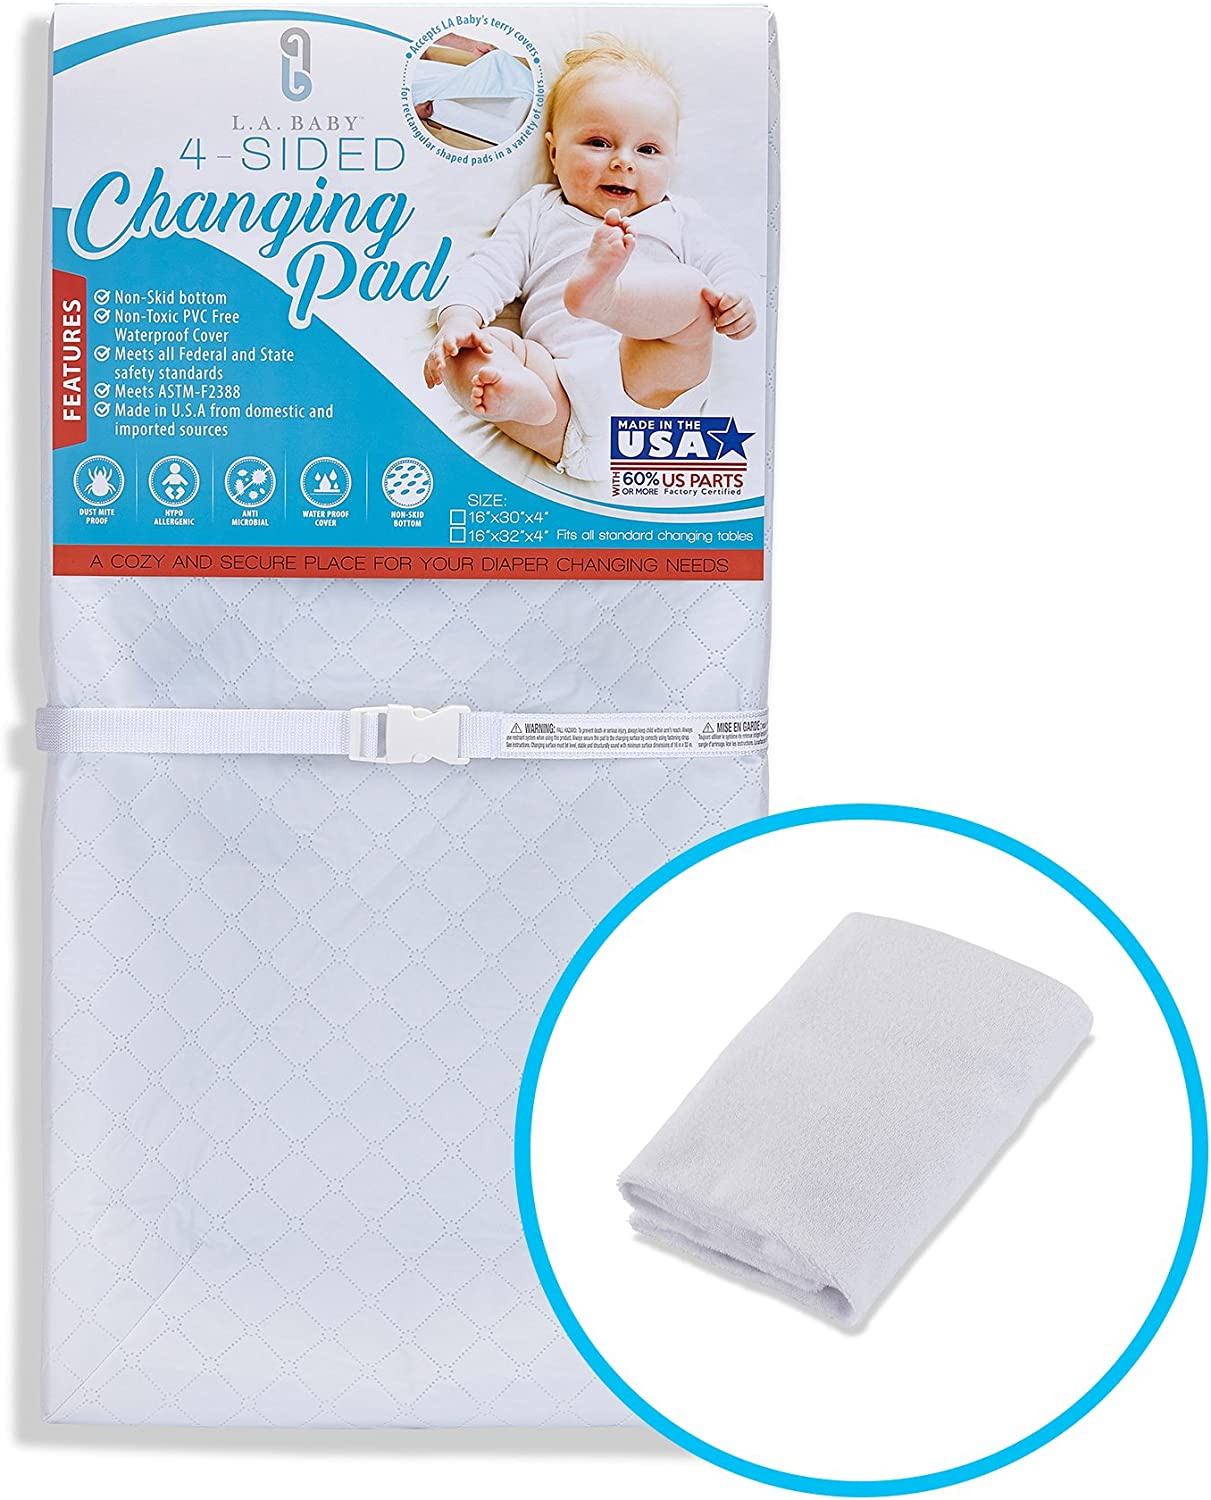 LA Baby Combo Pack with 30'' 4 Sided Changing Pad and White Terry Cover by LA Baby